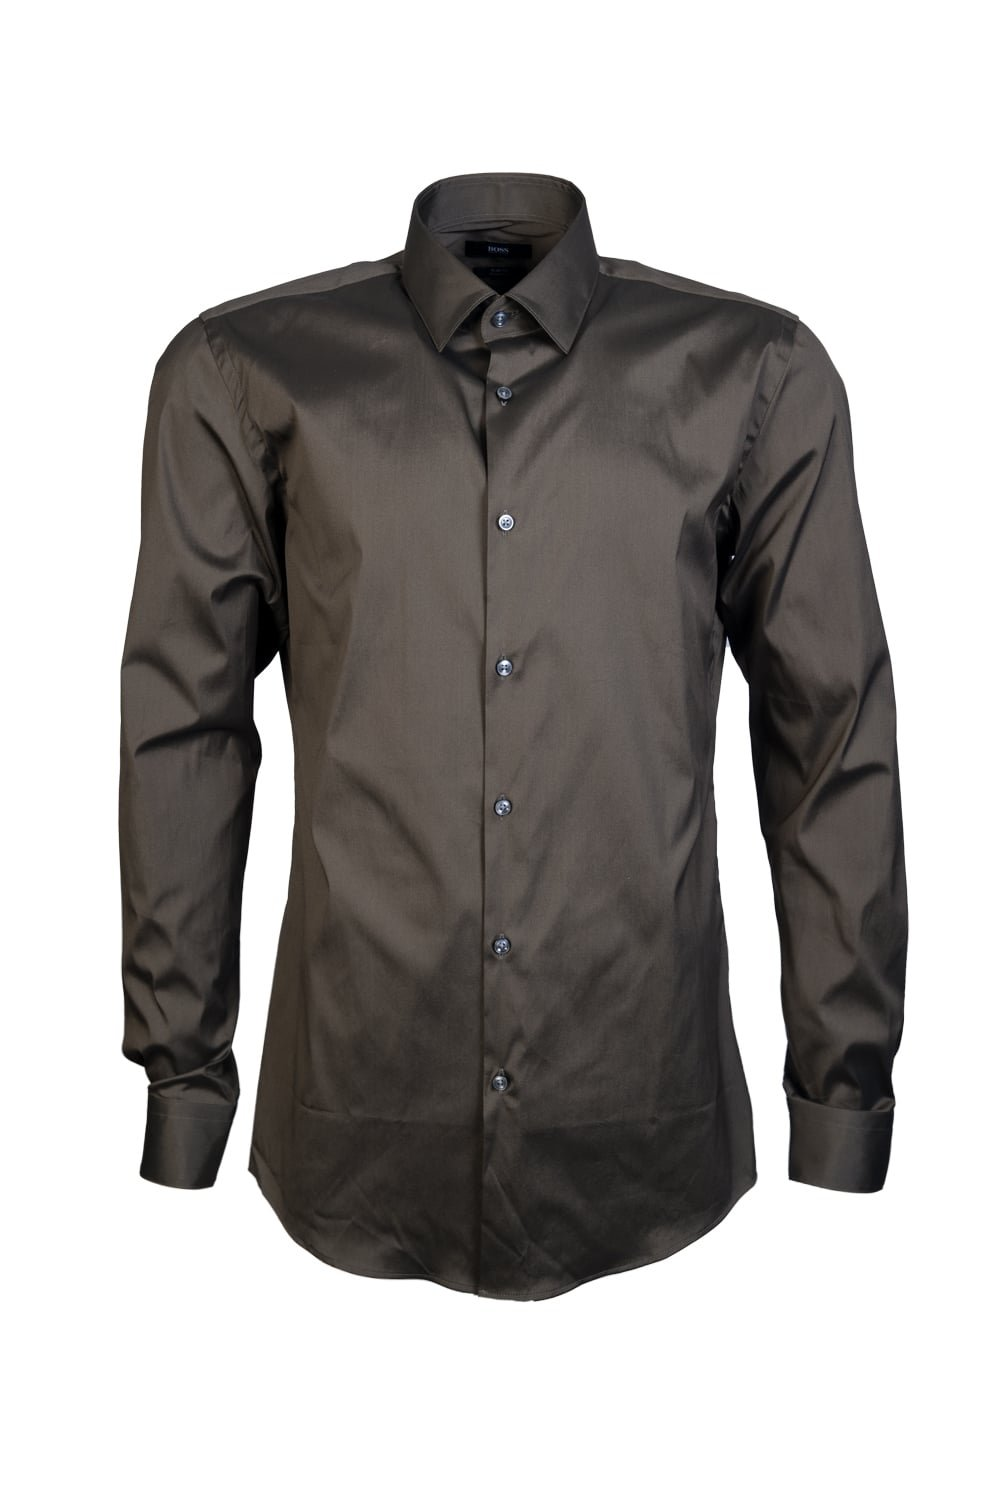 Boss Isko Stretch Shirt In Khaki 41